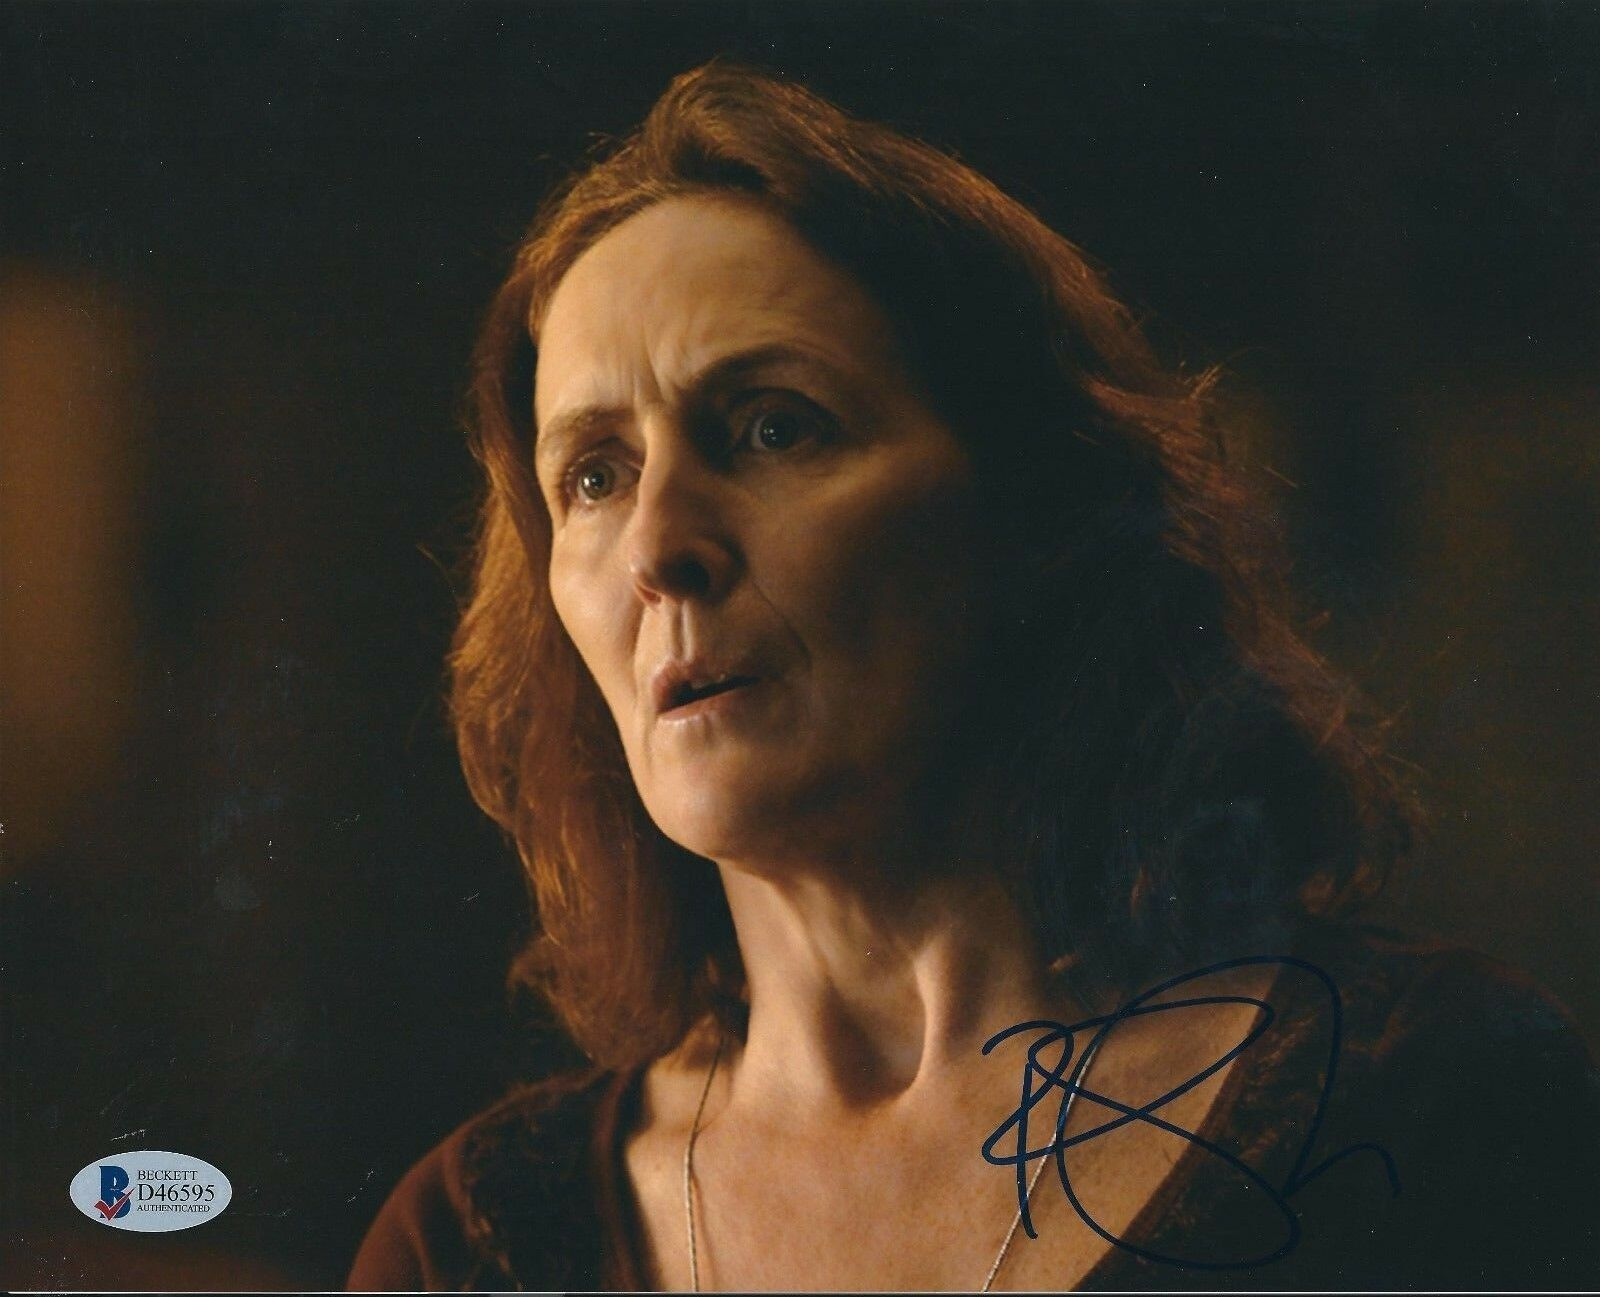 Fiona Shaw Signed 8x10 Photo *Harry Potter *Fracture *The Avengers BAS D46595